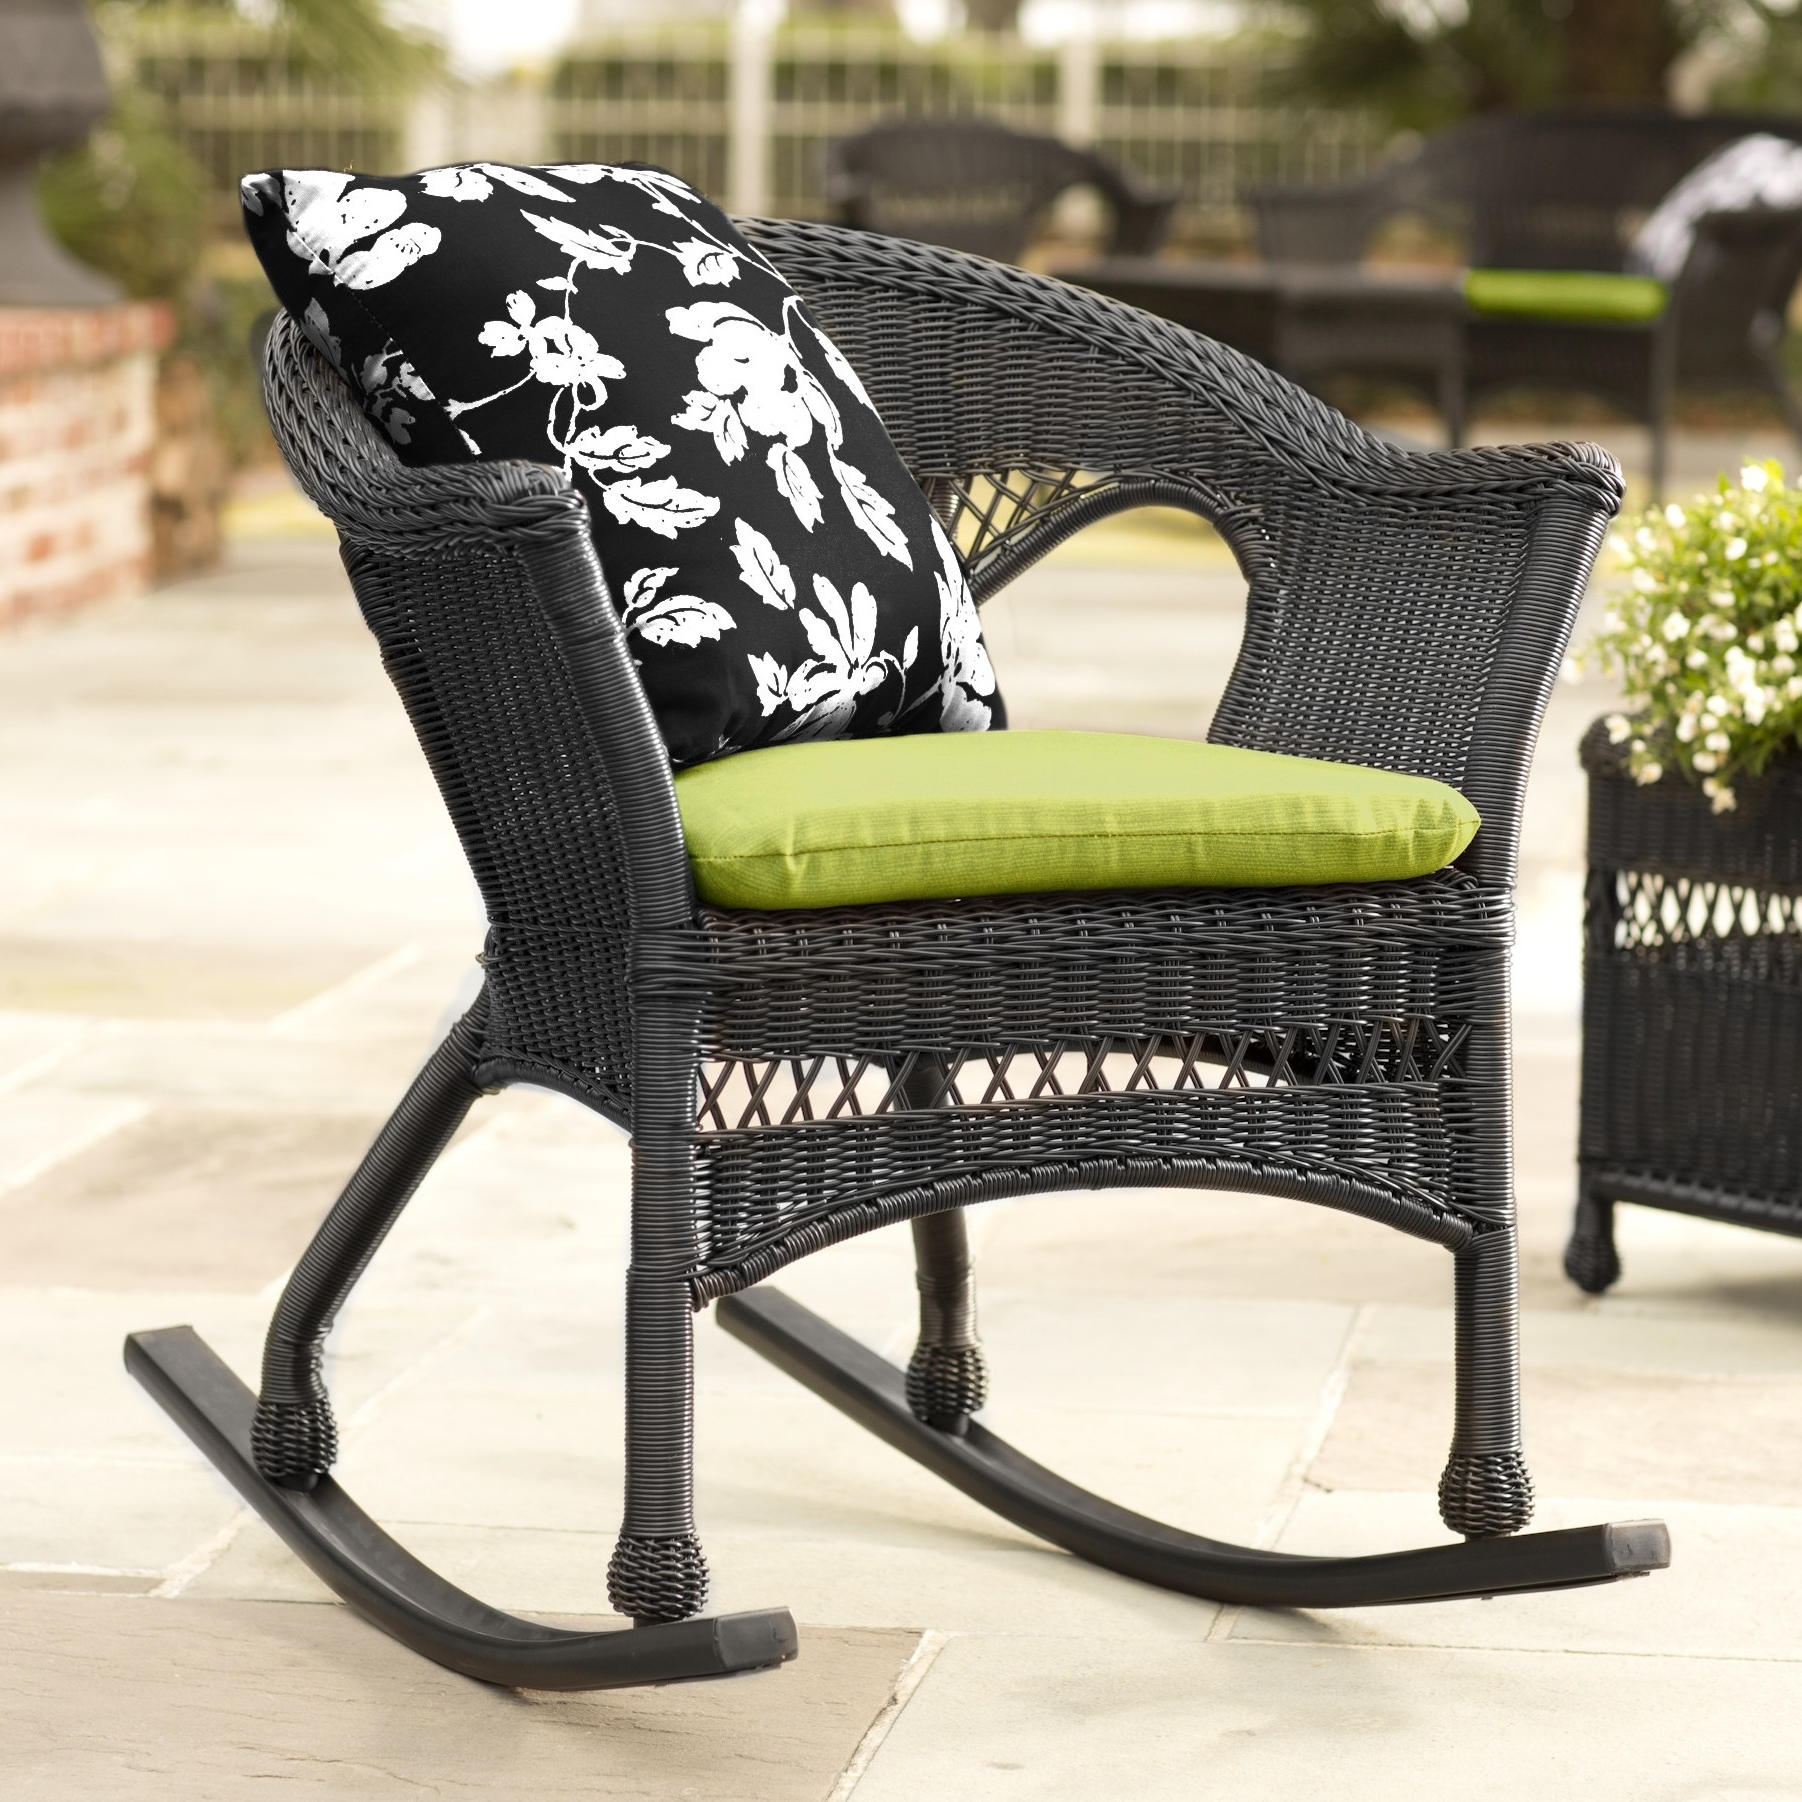 Patio Rocking Chairs And Gliders Pertaining To Popular Rocker Chair (View 10 of 15)